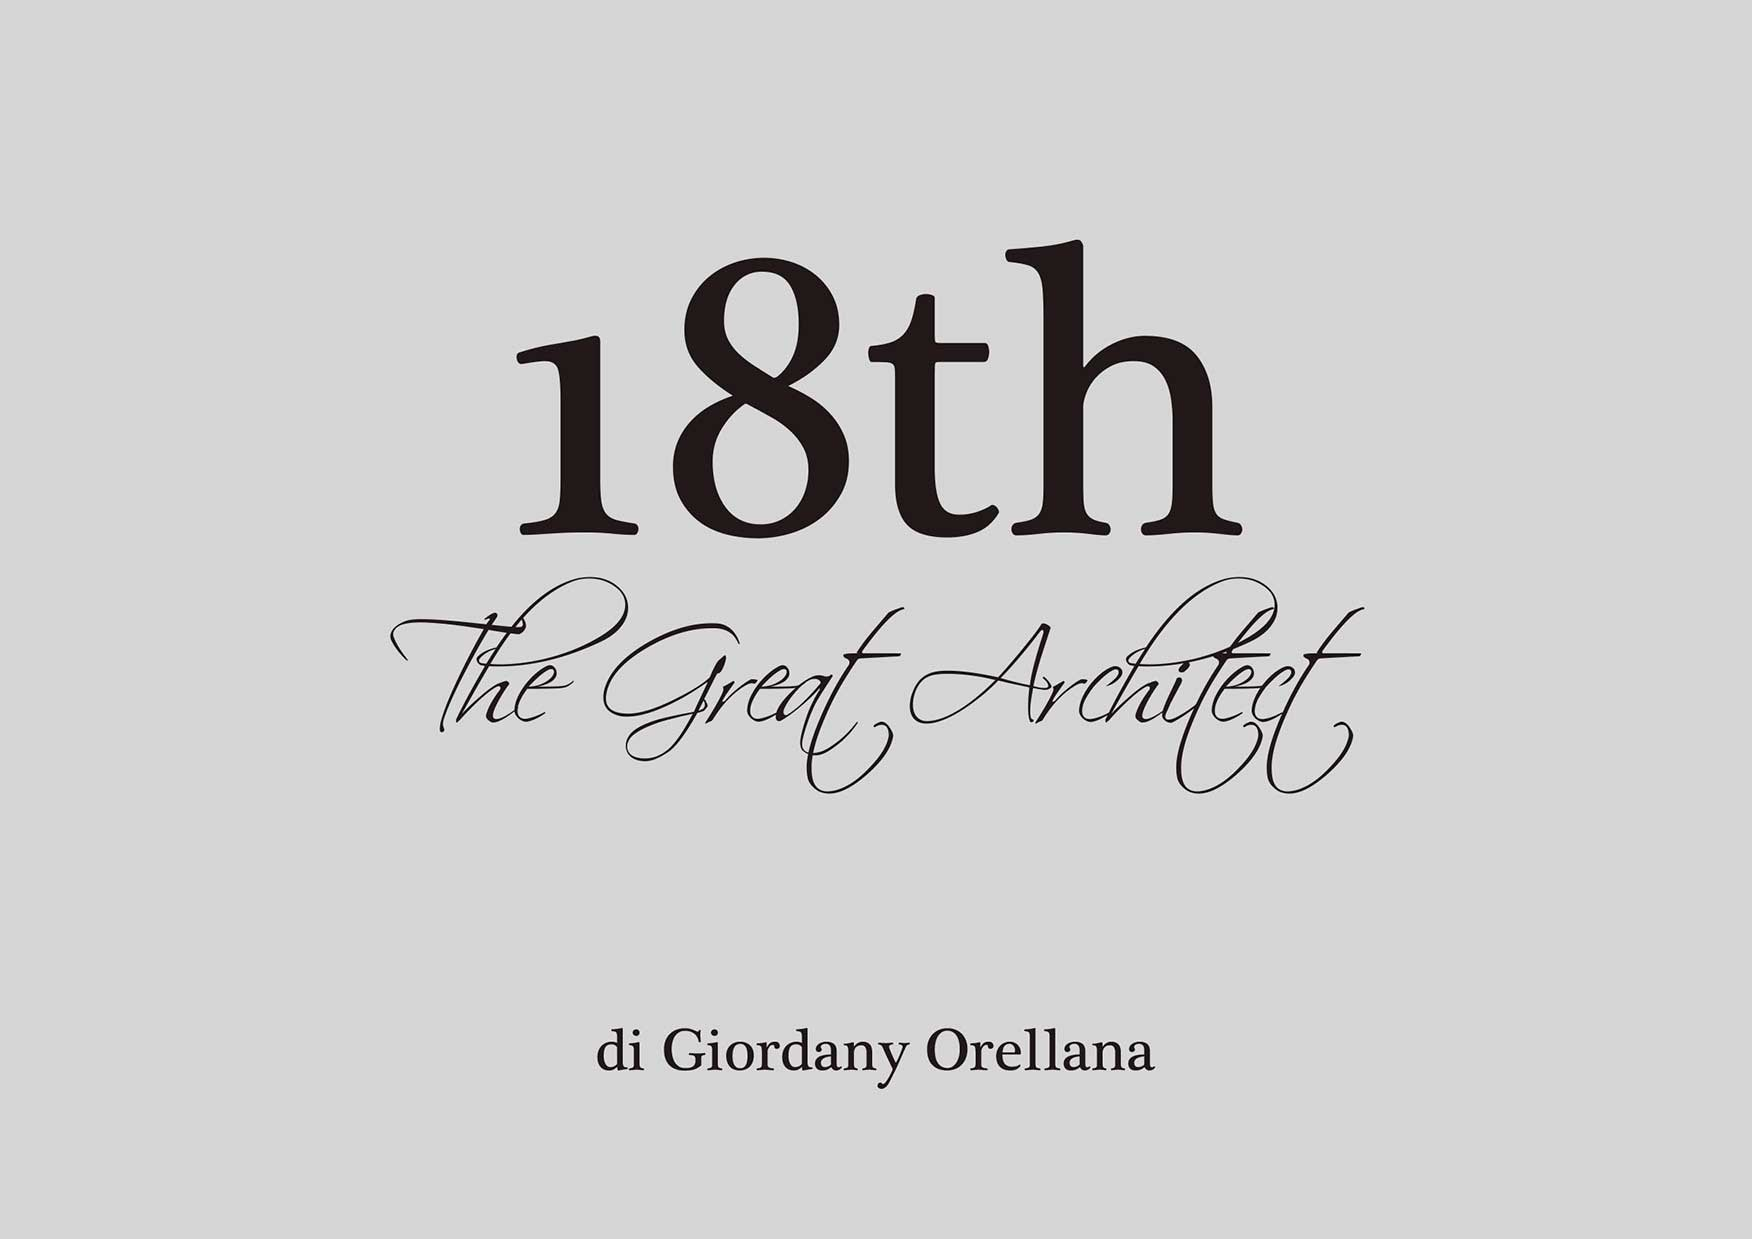 18th The Great Architect MR8 Productions